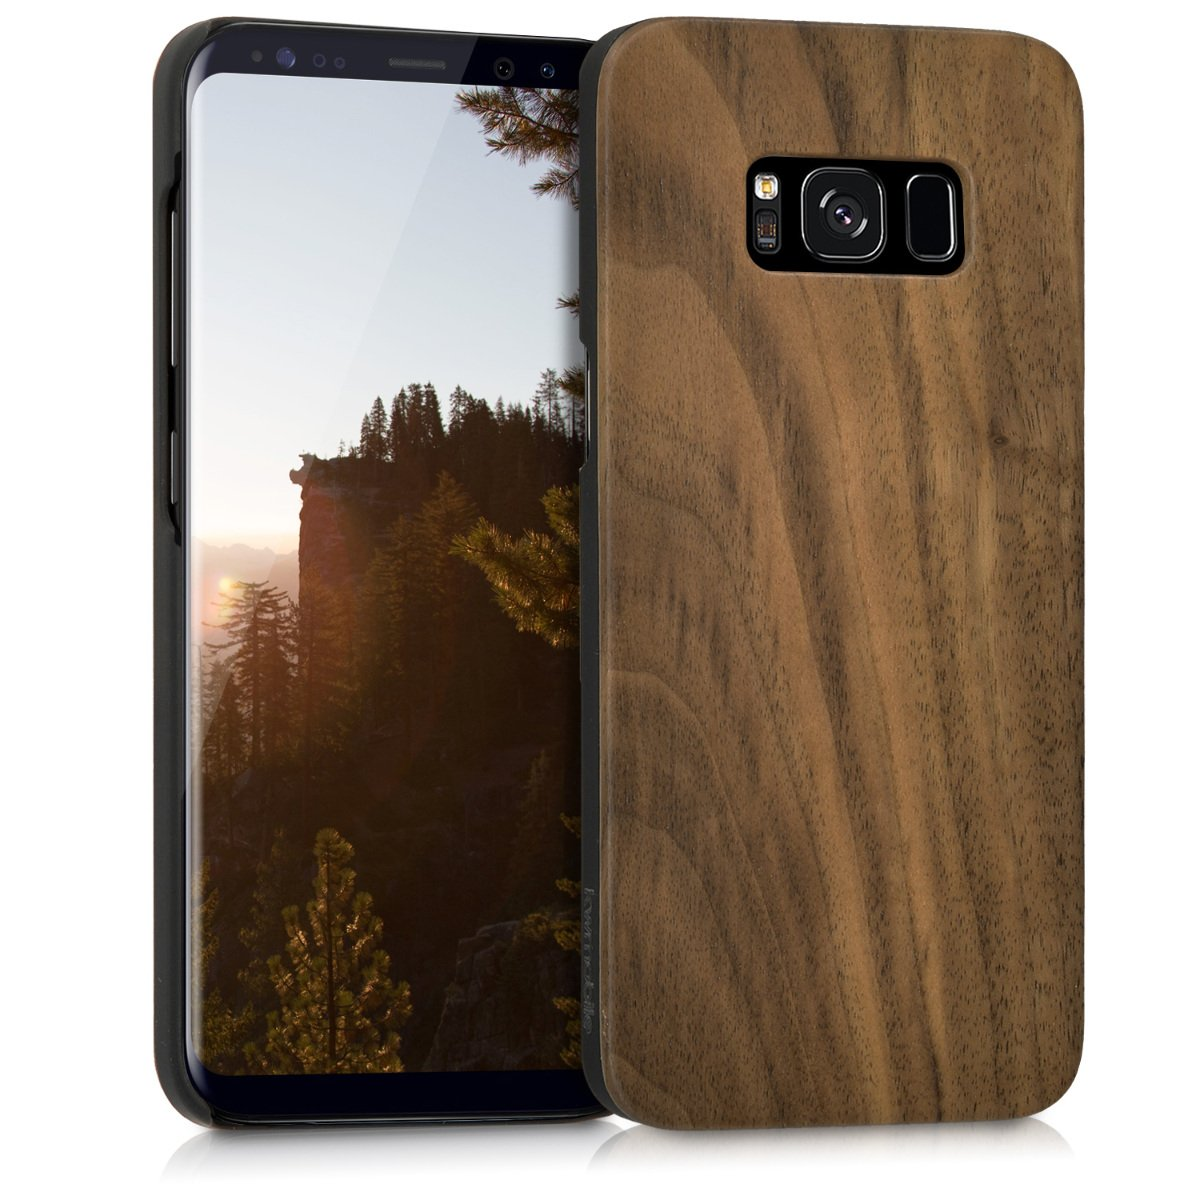 buy online eb2f3 87e4f kwmobile Samsung Galaxy S8 Wood Case - Non-Slip Natural Solid Hard Wooden  Protective Cover for Samsung Galaxy S8